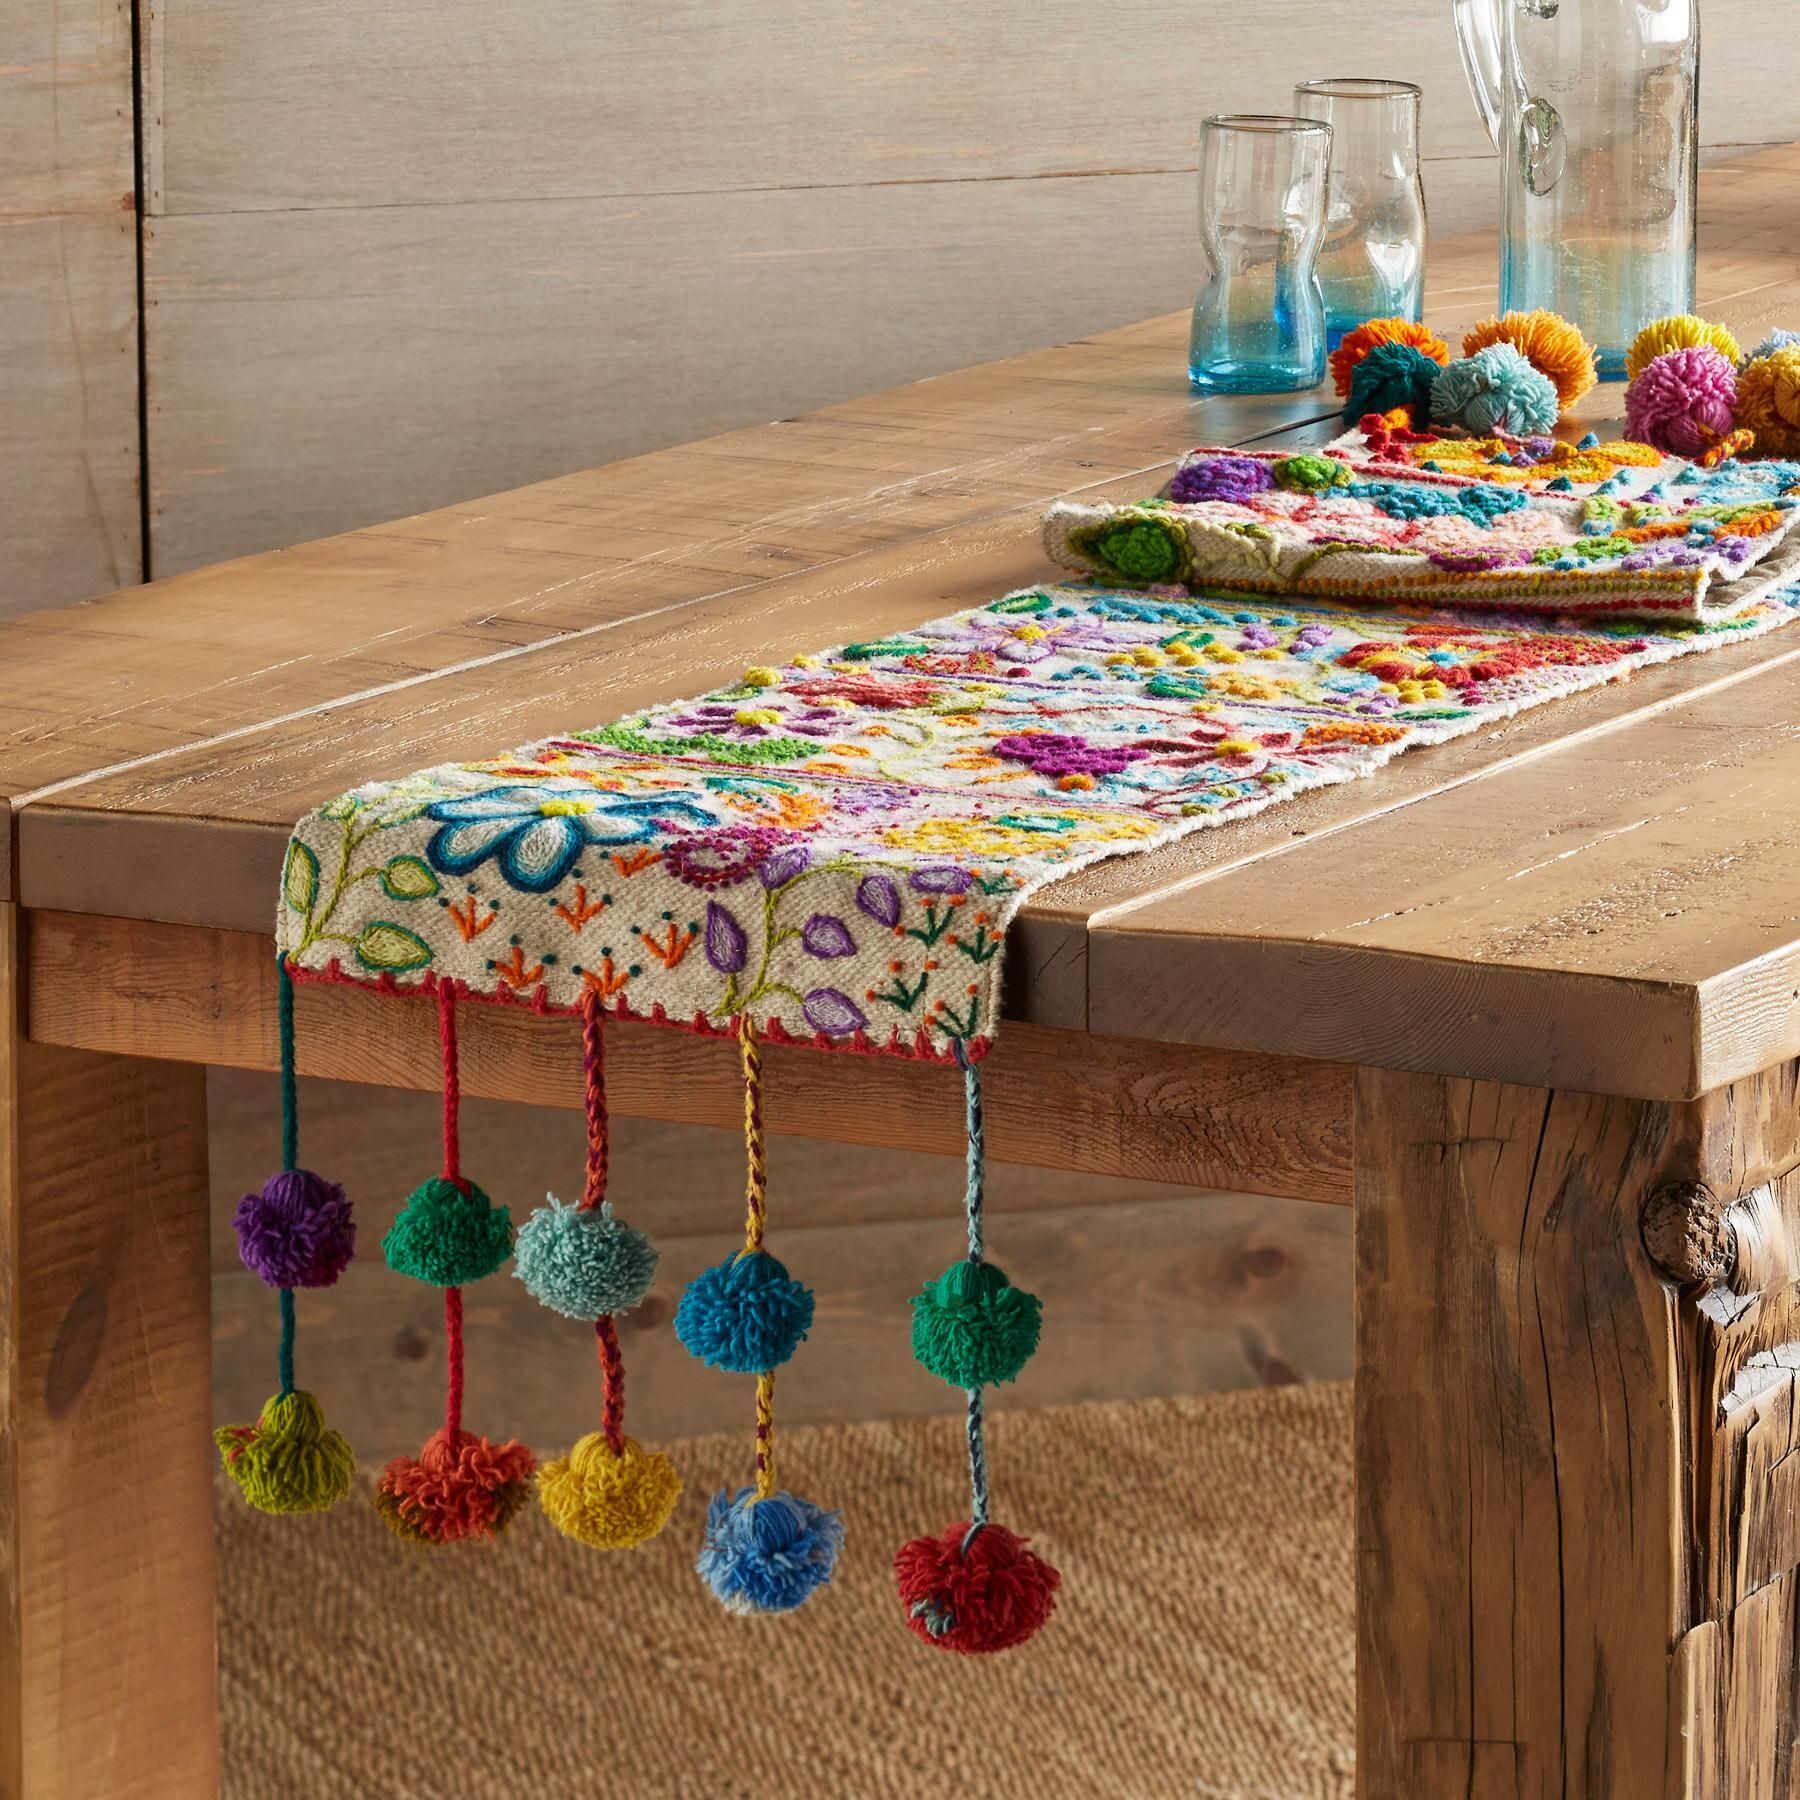 POMPOSA TABLE RUNNER -- Each of these colorful runners is one of a kind, made by the women in the villages around Cusco, Peru, as stitch samplers to show off their embroidery skills. Handloomed wool, with bright pom-poms on each end. By Jenny Krauss. Catalog exclusive. Approx. 12W x 62L. #embroidery